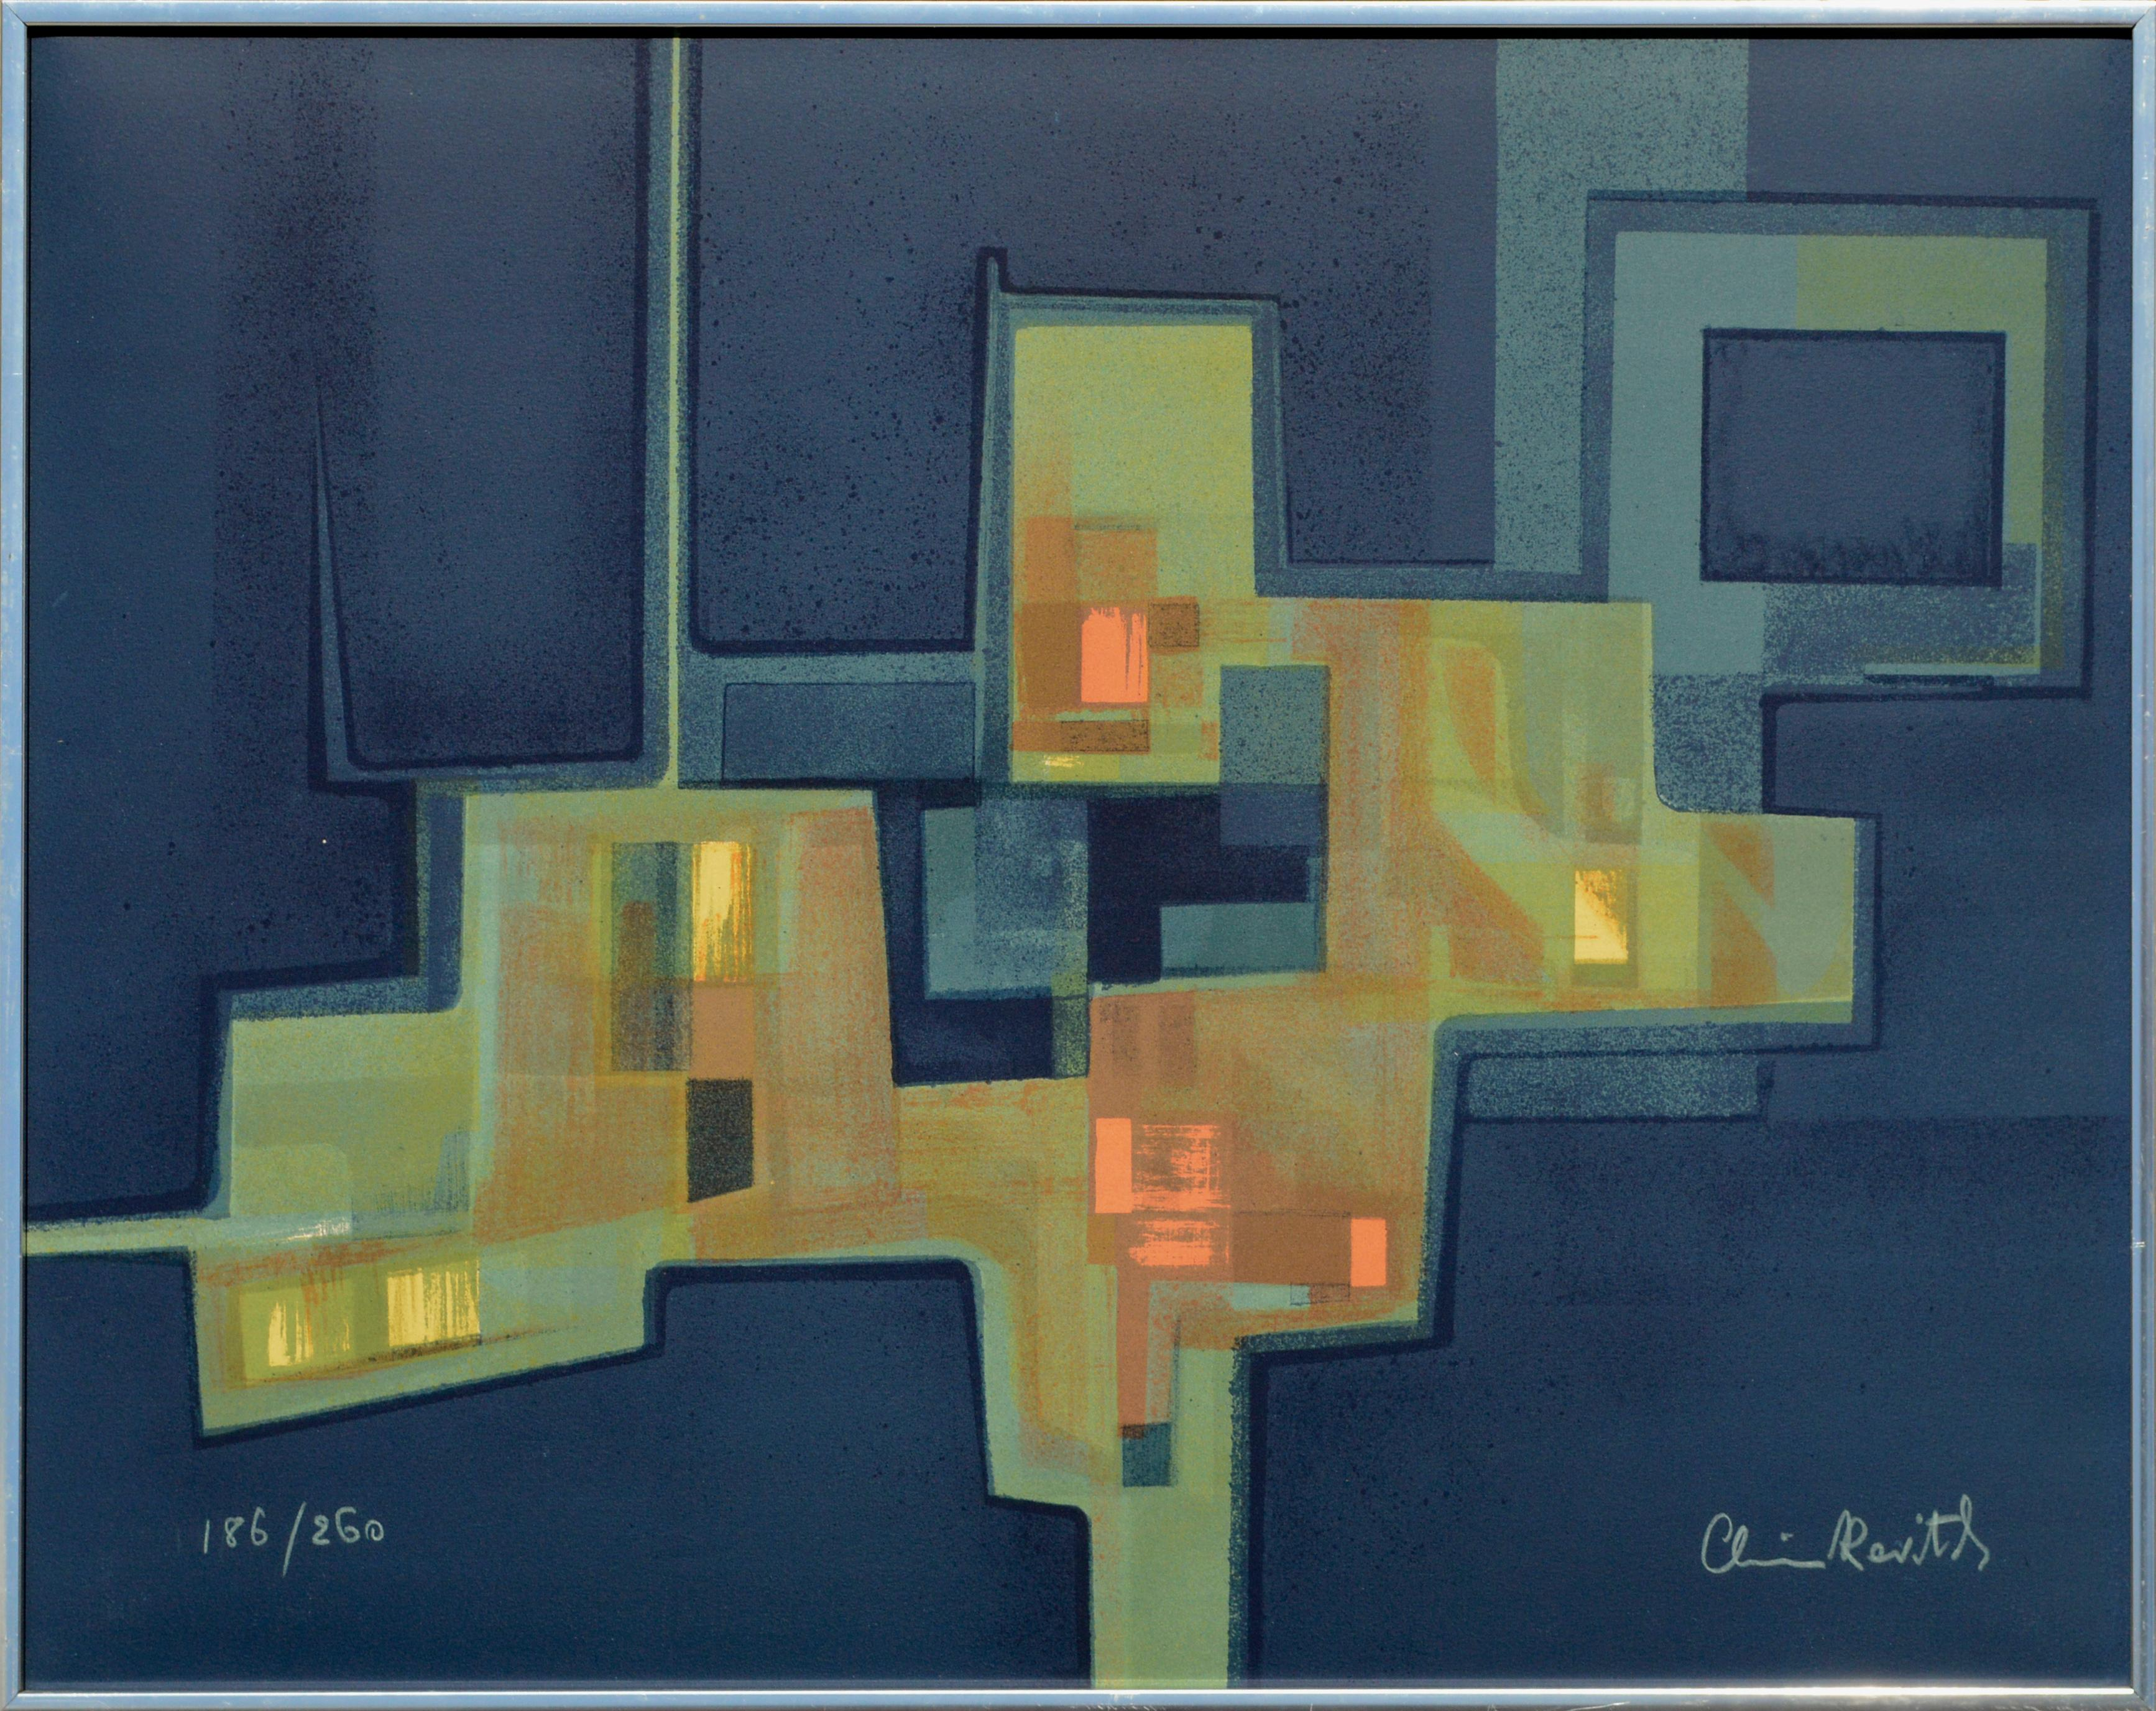 Abstract Geometric Sage Green with Rust Orange on Dark Blue, Signed Lithograph